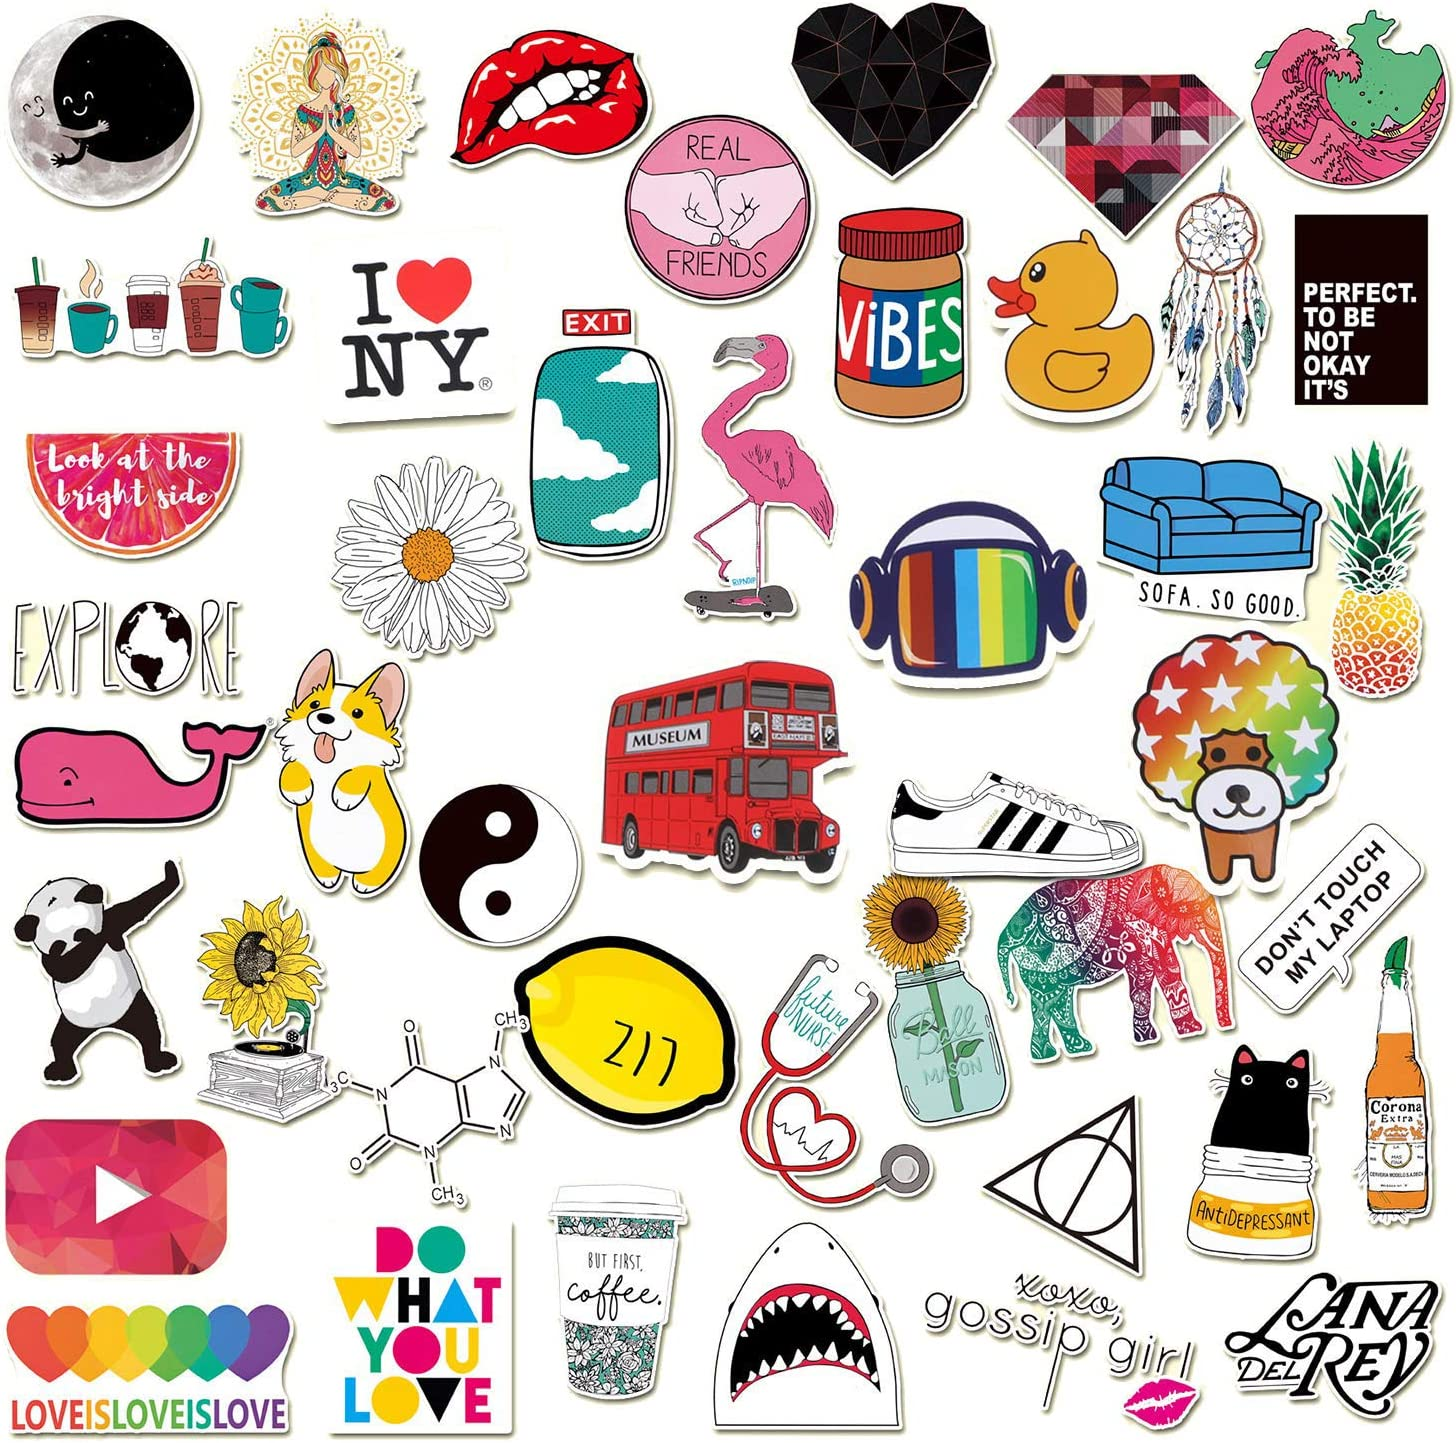 46Pcs-Cute Laptop Stickers,Cartoon Waterproof Vinyl Water Bottle Computer Notebook Car Skateboard Motorcycle Bicycle Luggage Guitar Bike Decal